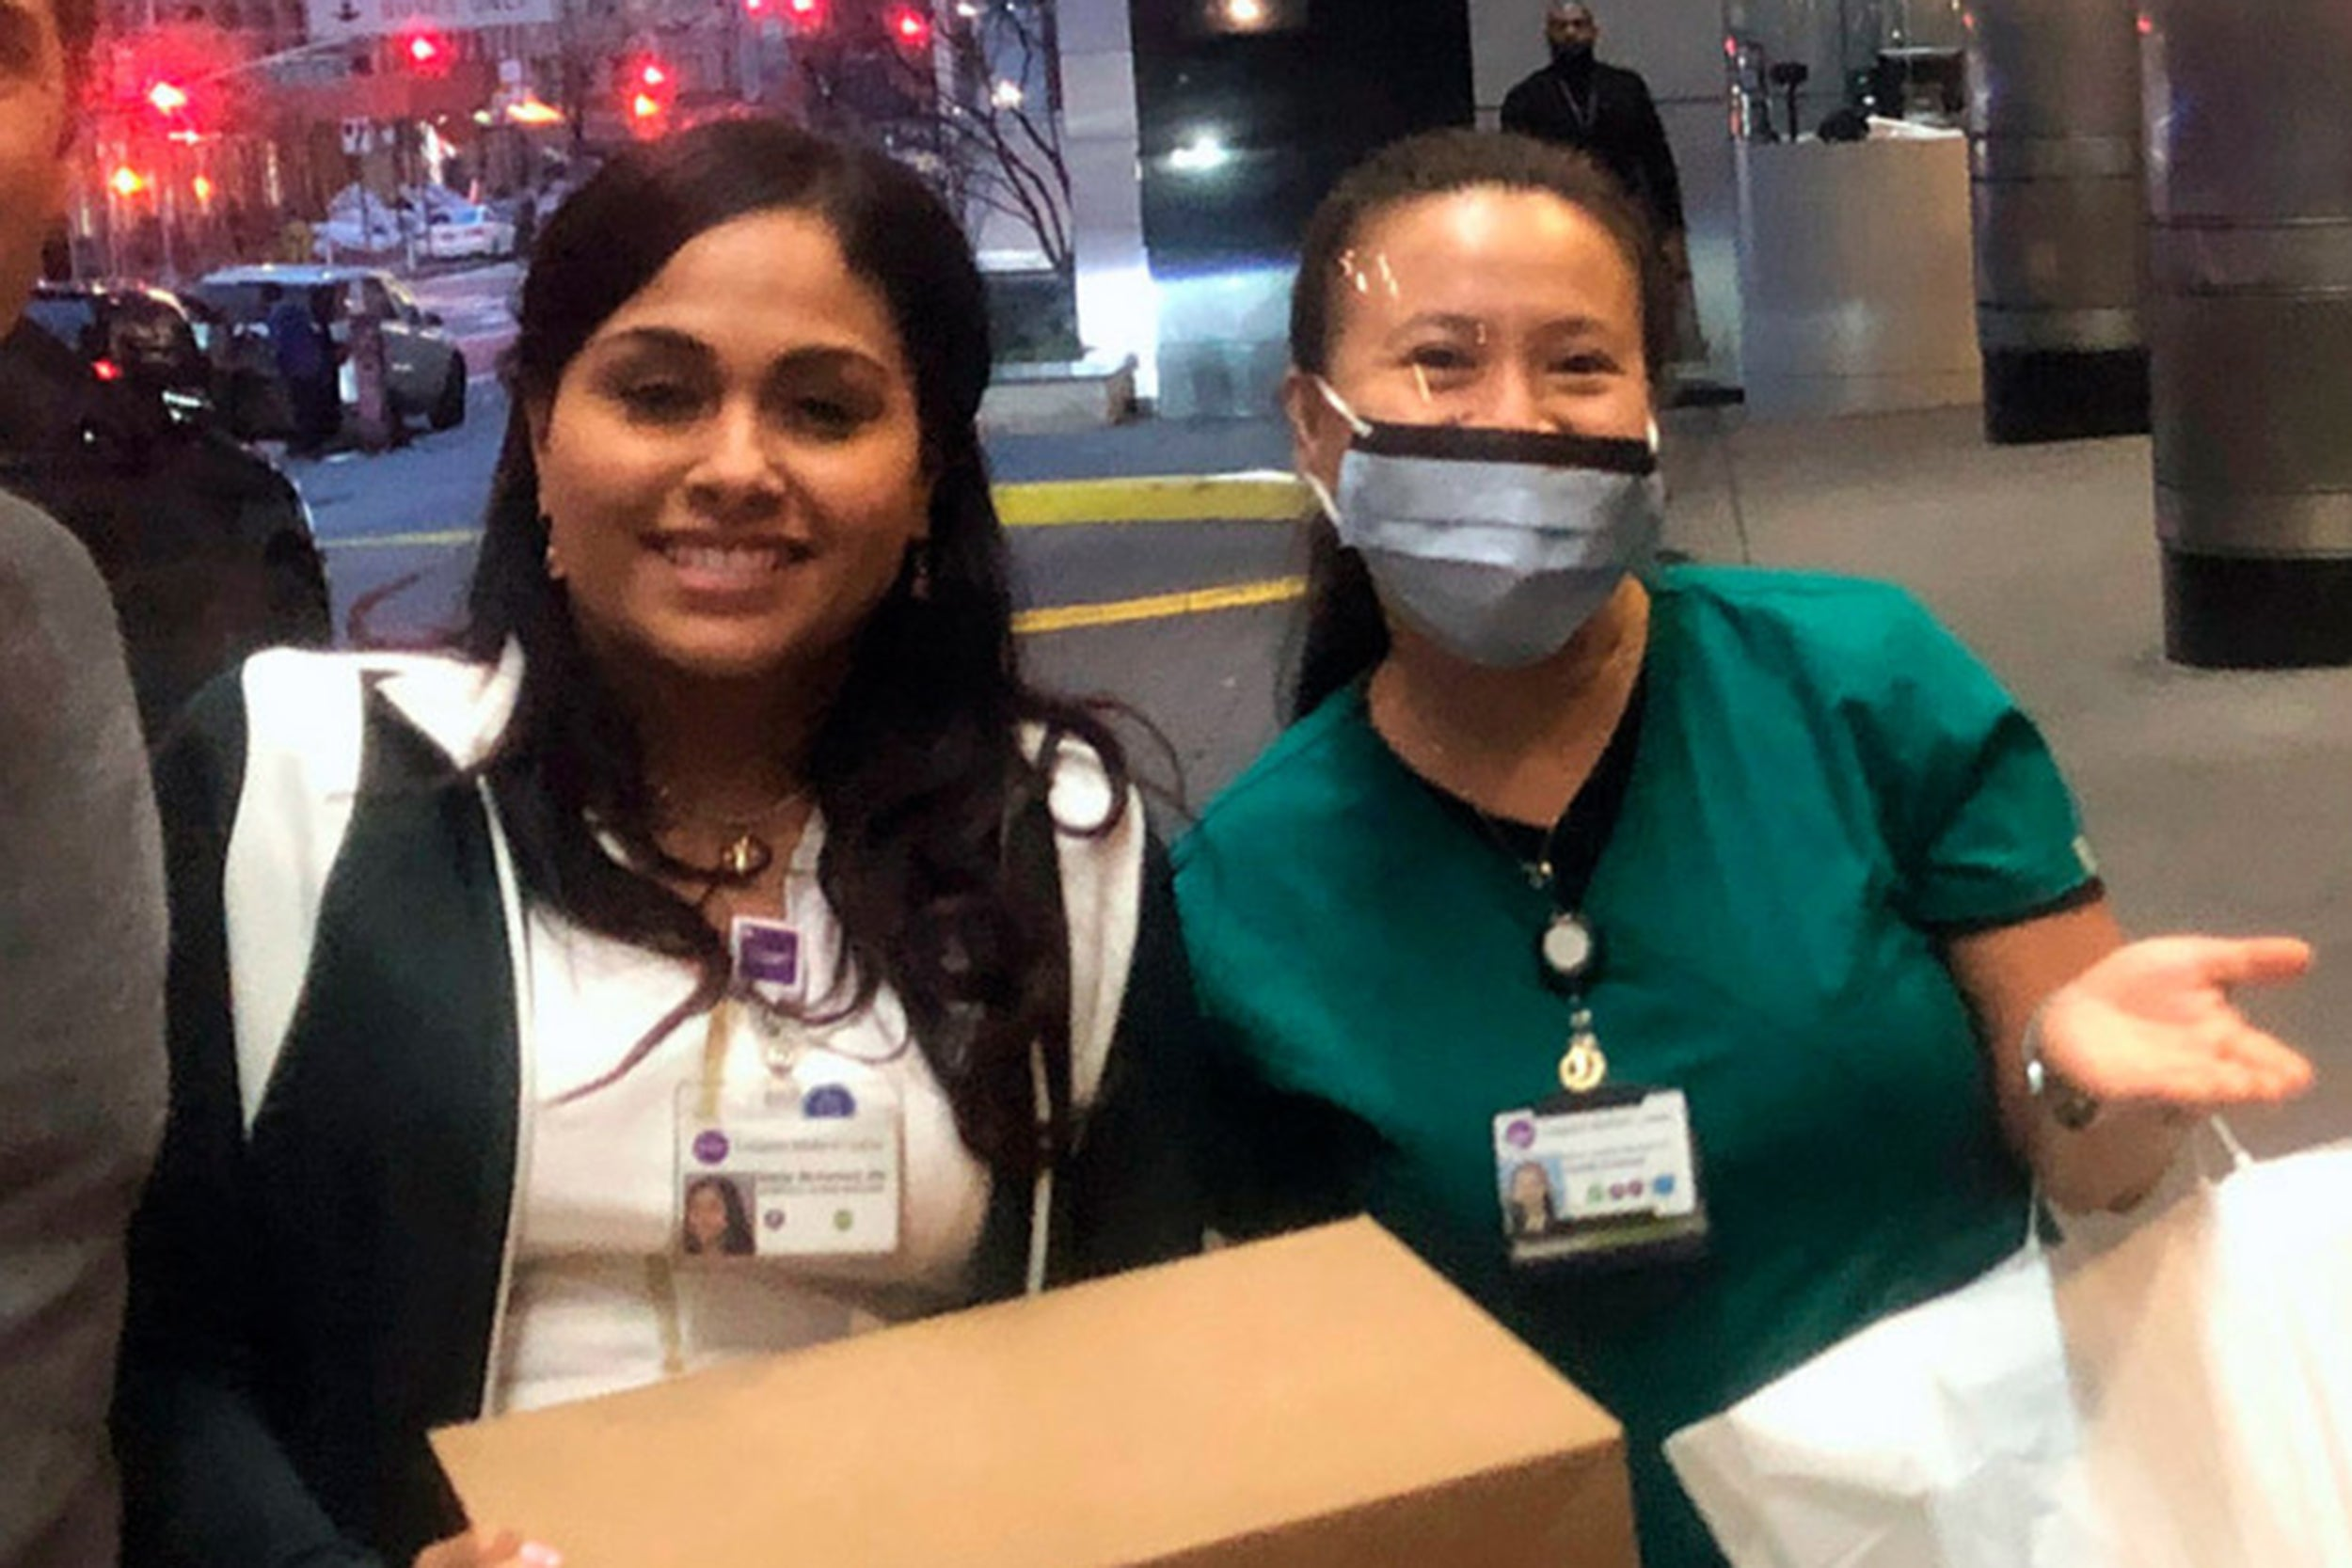 Delivering meals to a hospital in NYC.